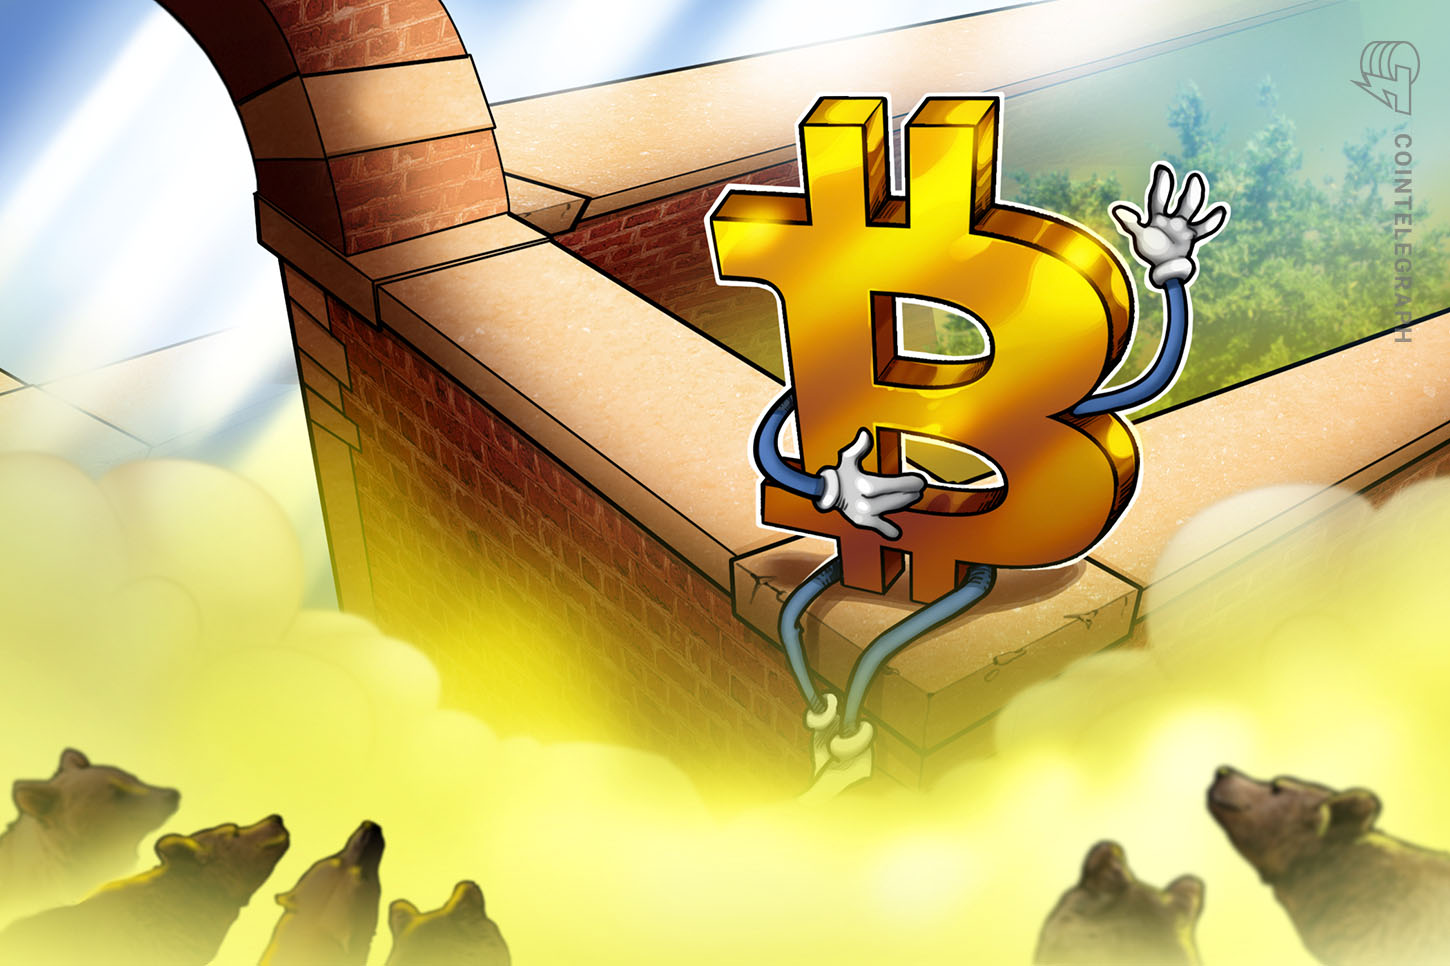 3 reasons why Bitcoin price suddenly dropping below $13,000 isn't bearish - Cointelegraph